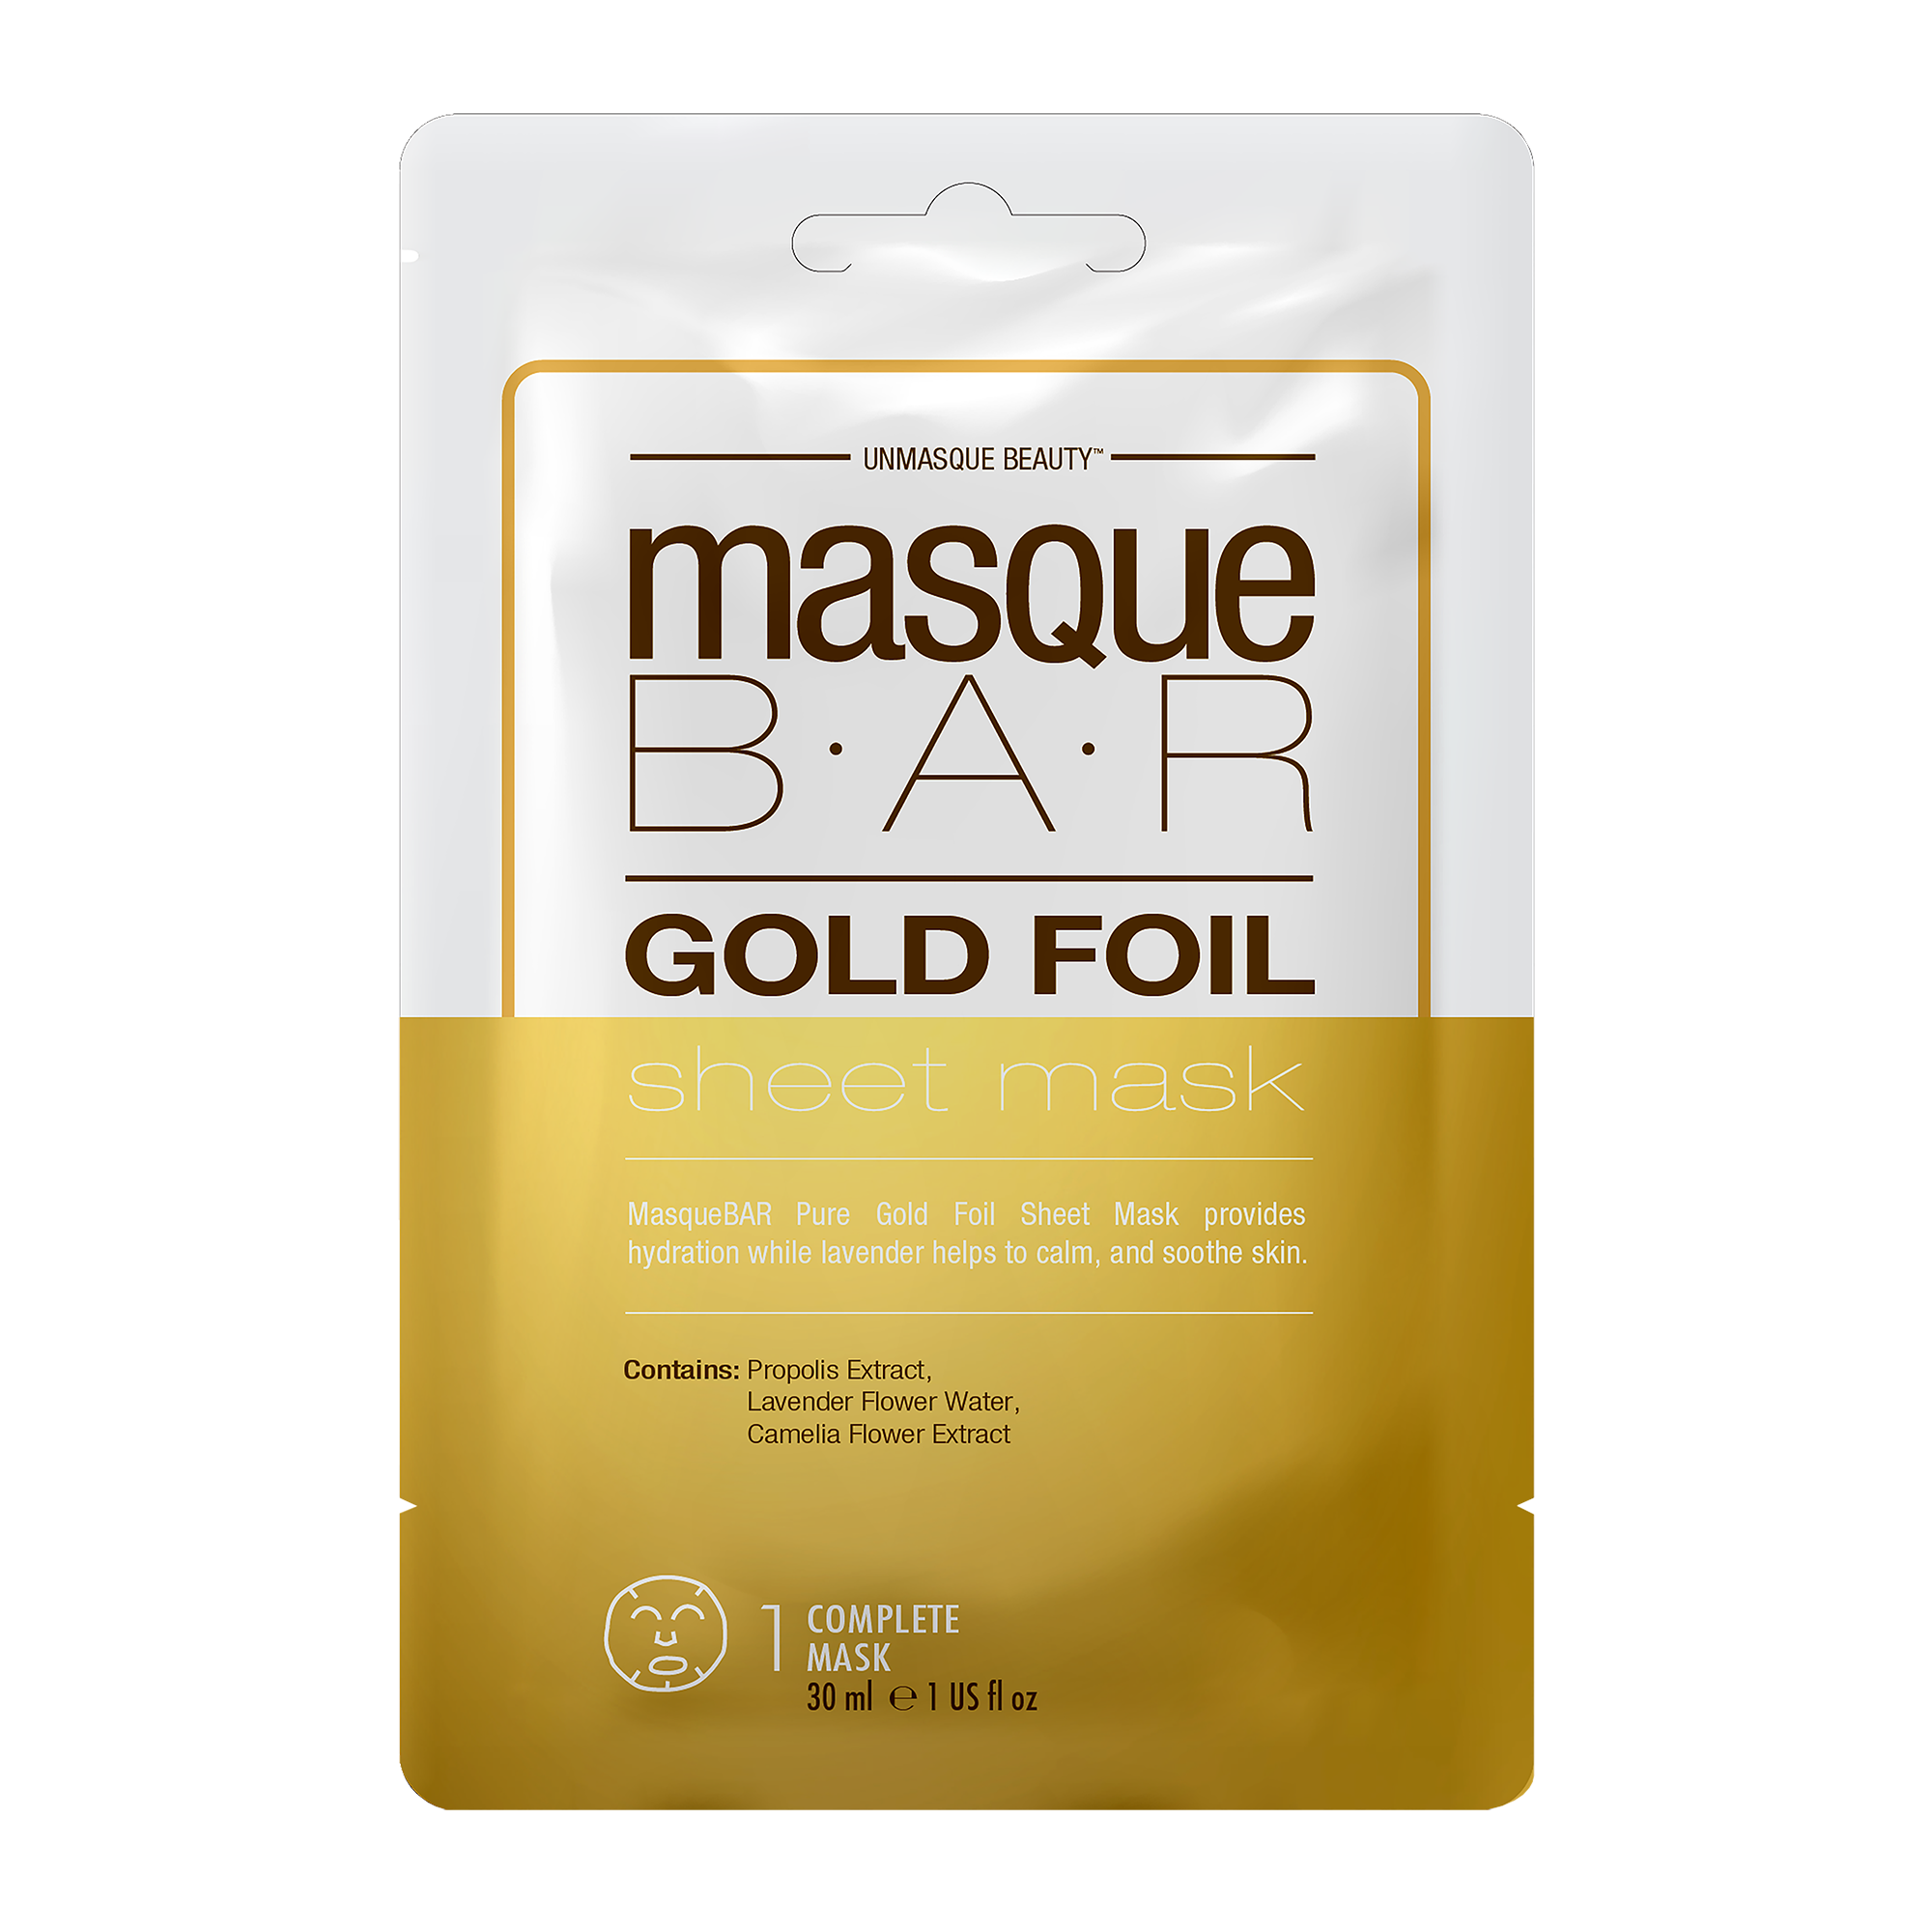 Foil Gold Sheet Mask